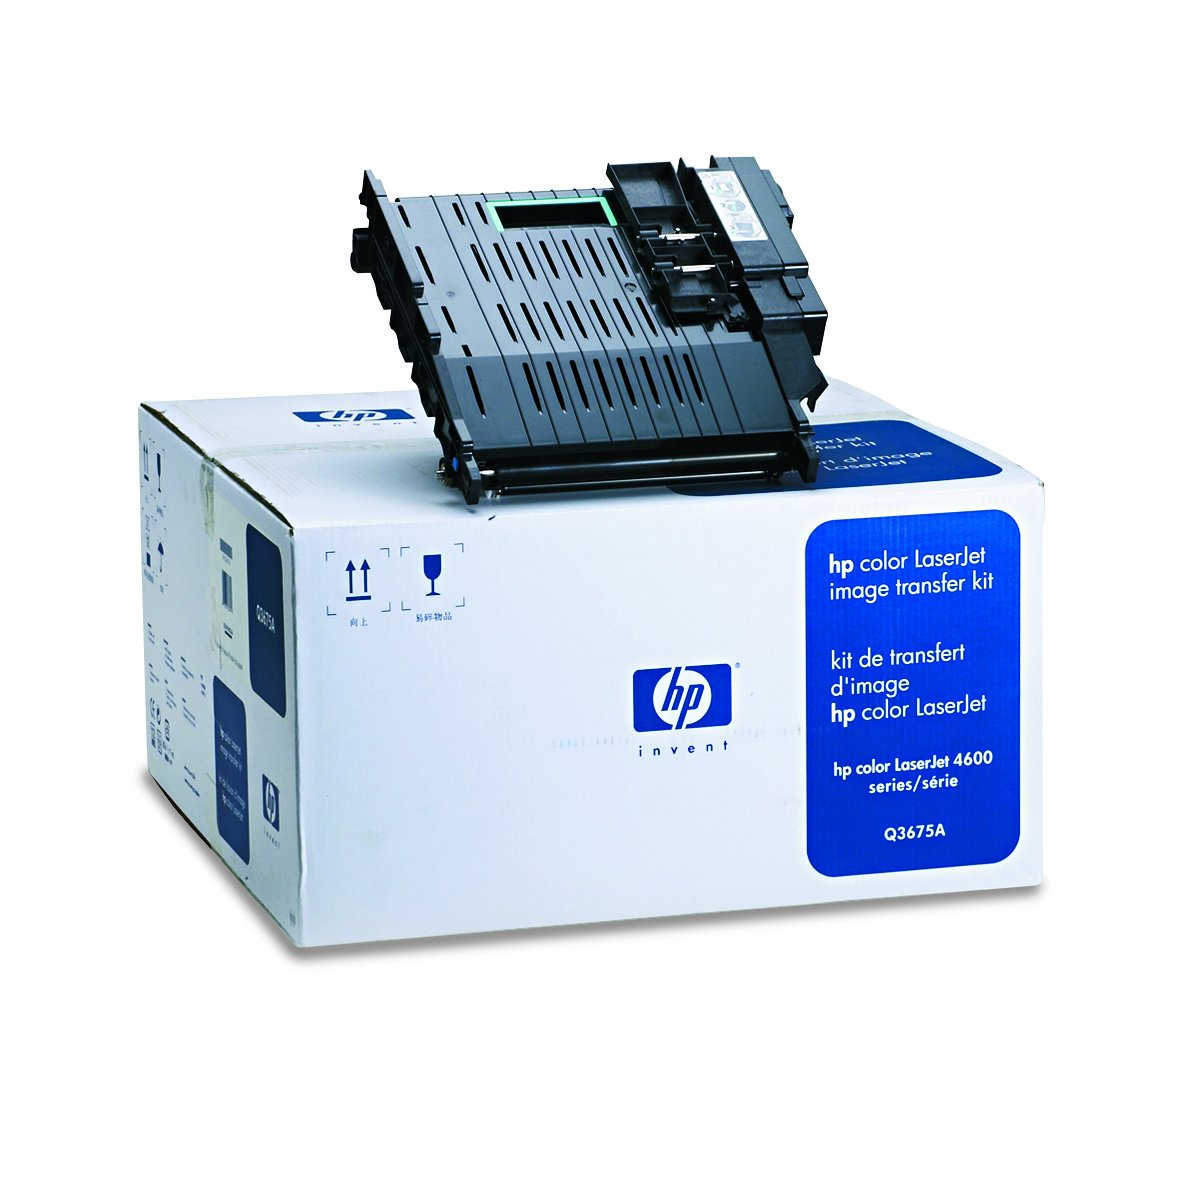 Hewlett Packard Q3675A Image transfer kit for hp color laserjet 4650 by HP